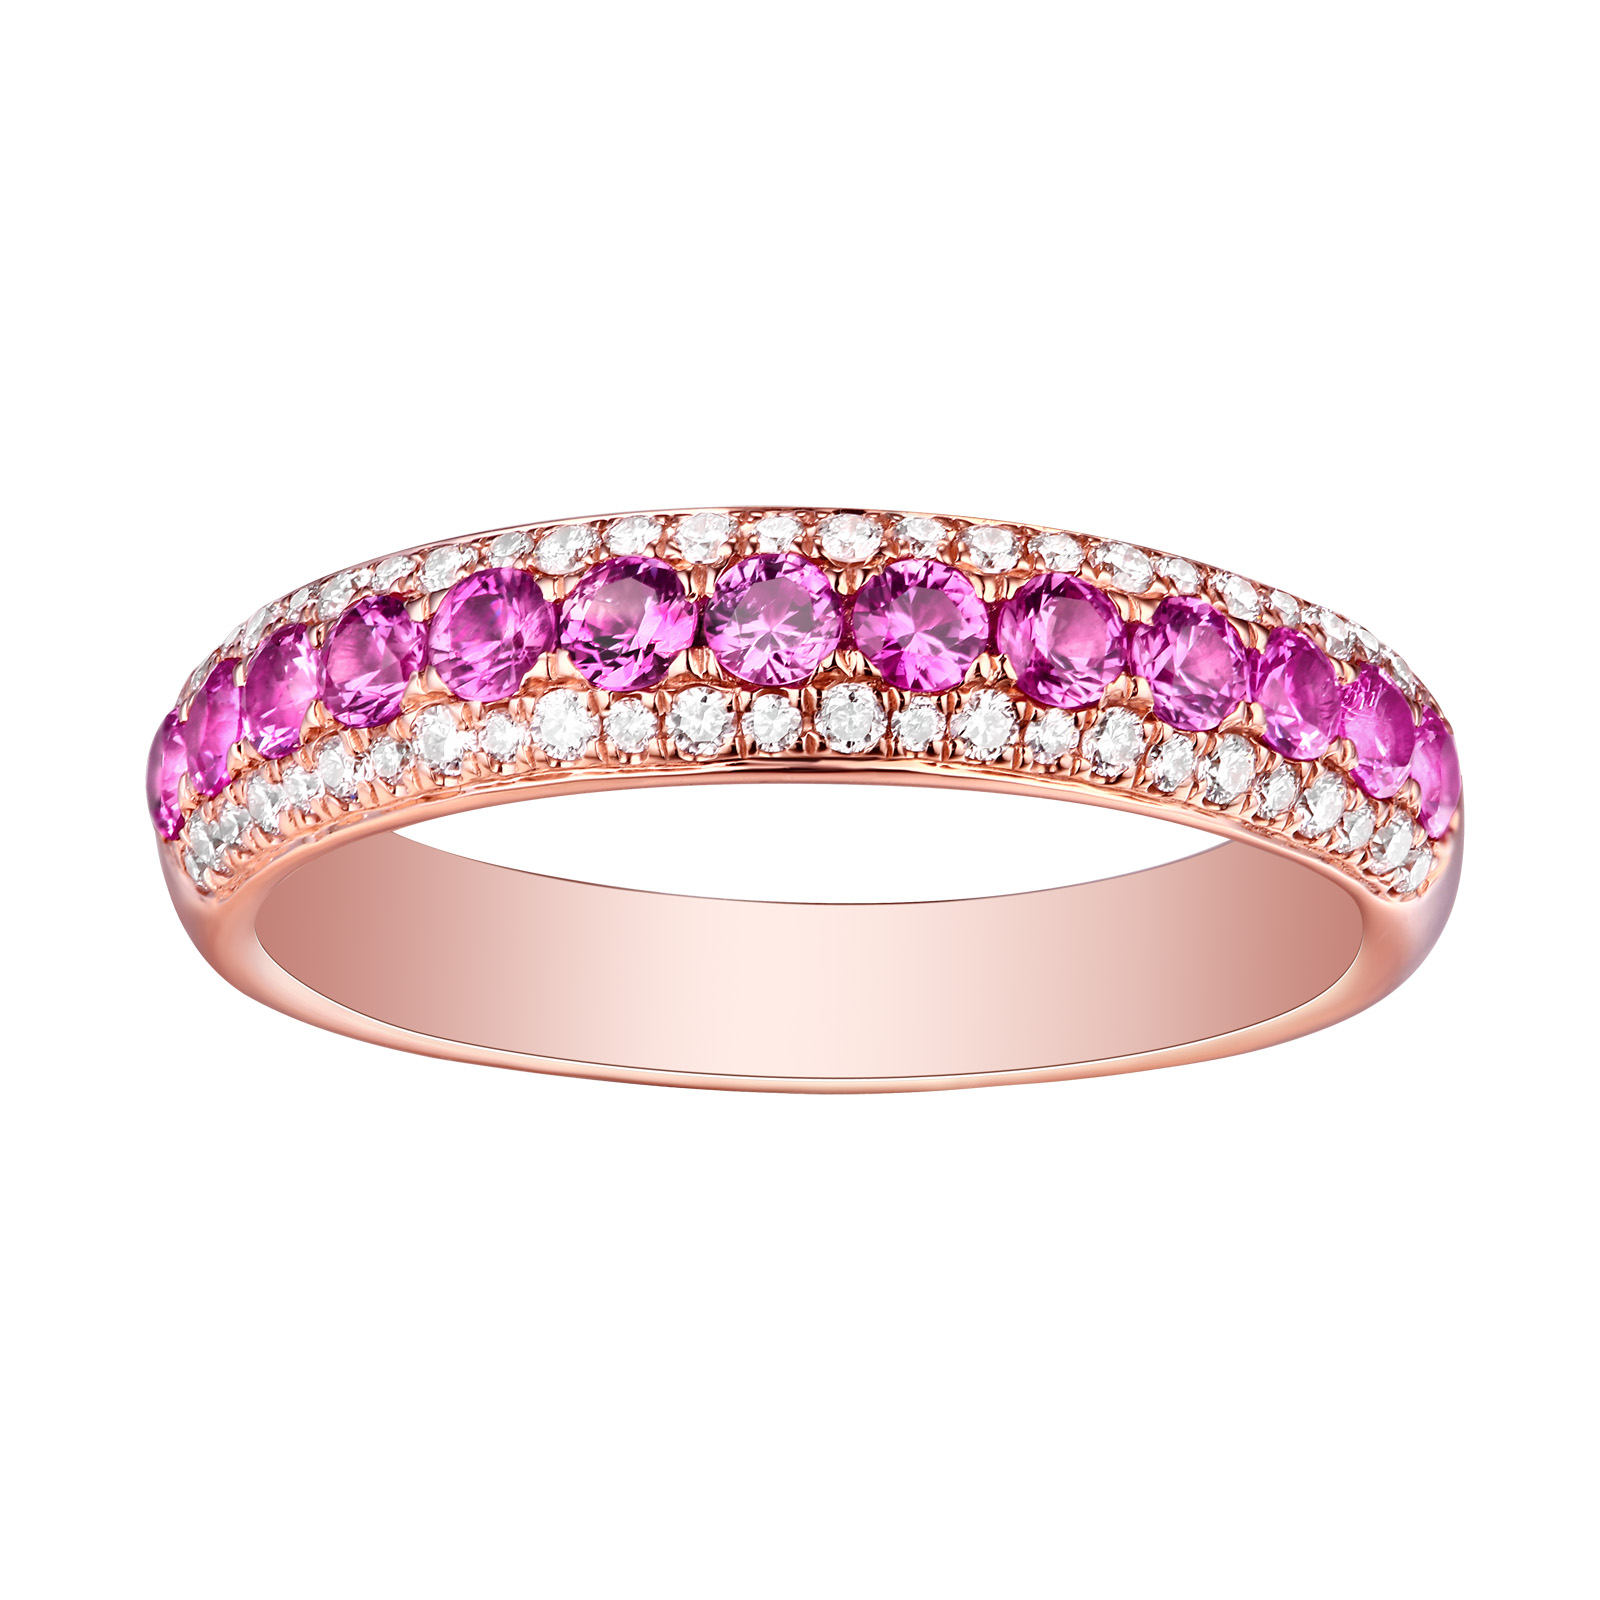 R22820PSA- 14K Rose Gold Pink Sapphire and Diamond Ring, 0.96 TCW